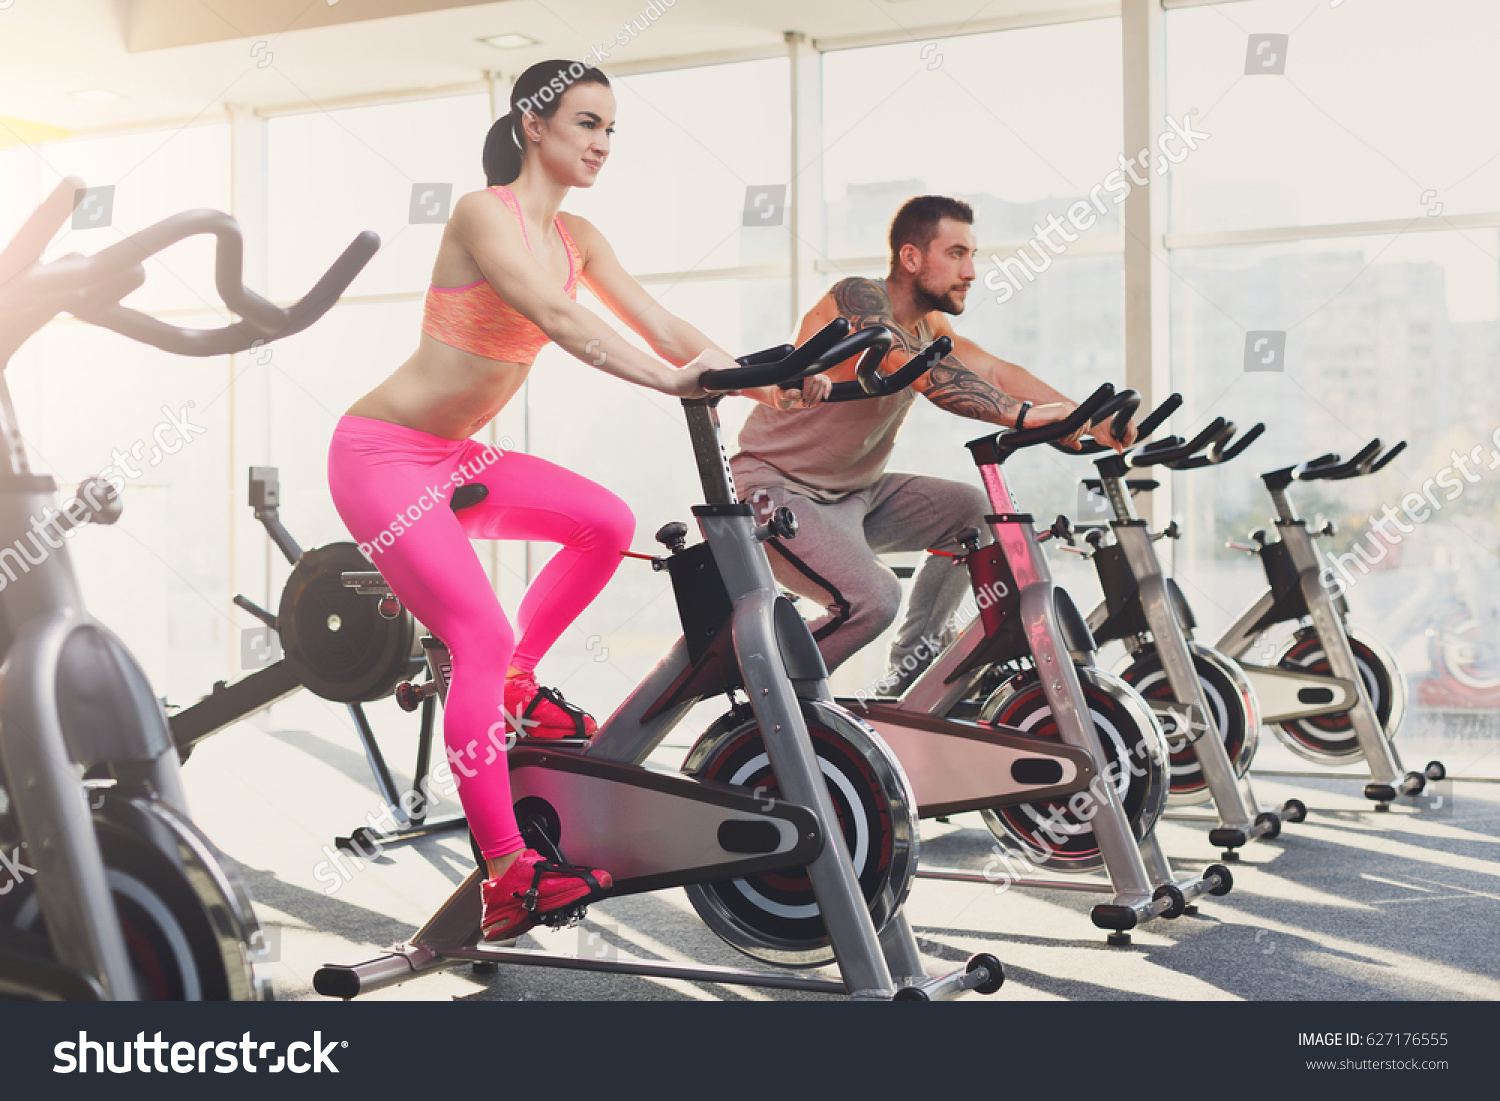 Young Happy Couple In Fitness Club Cardio Workout On Stationery Exercise Bikes Healthy Lifestyle